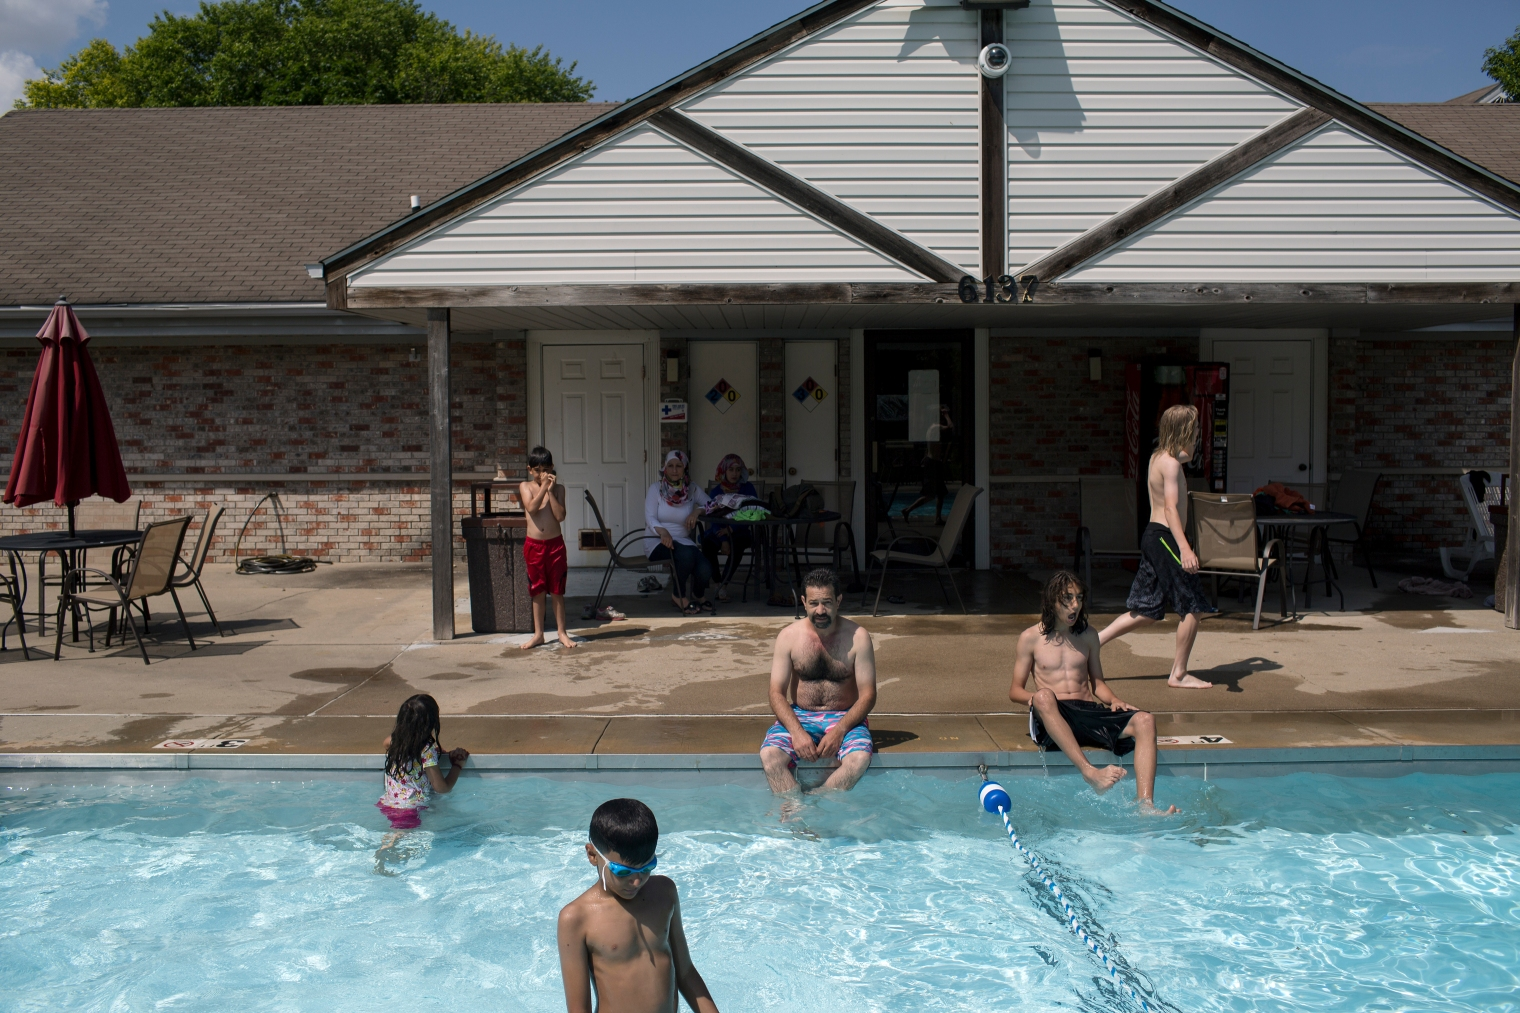 Abdul Fattah Tameem and his family enjoy the pool on a hot summer day at the family's new apartment complex in West Des Moines, a suburb of Des Moines, Iowa.